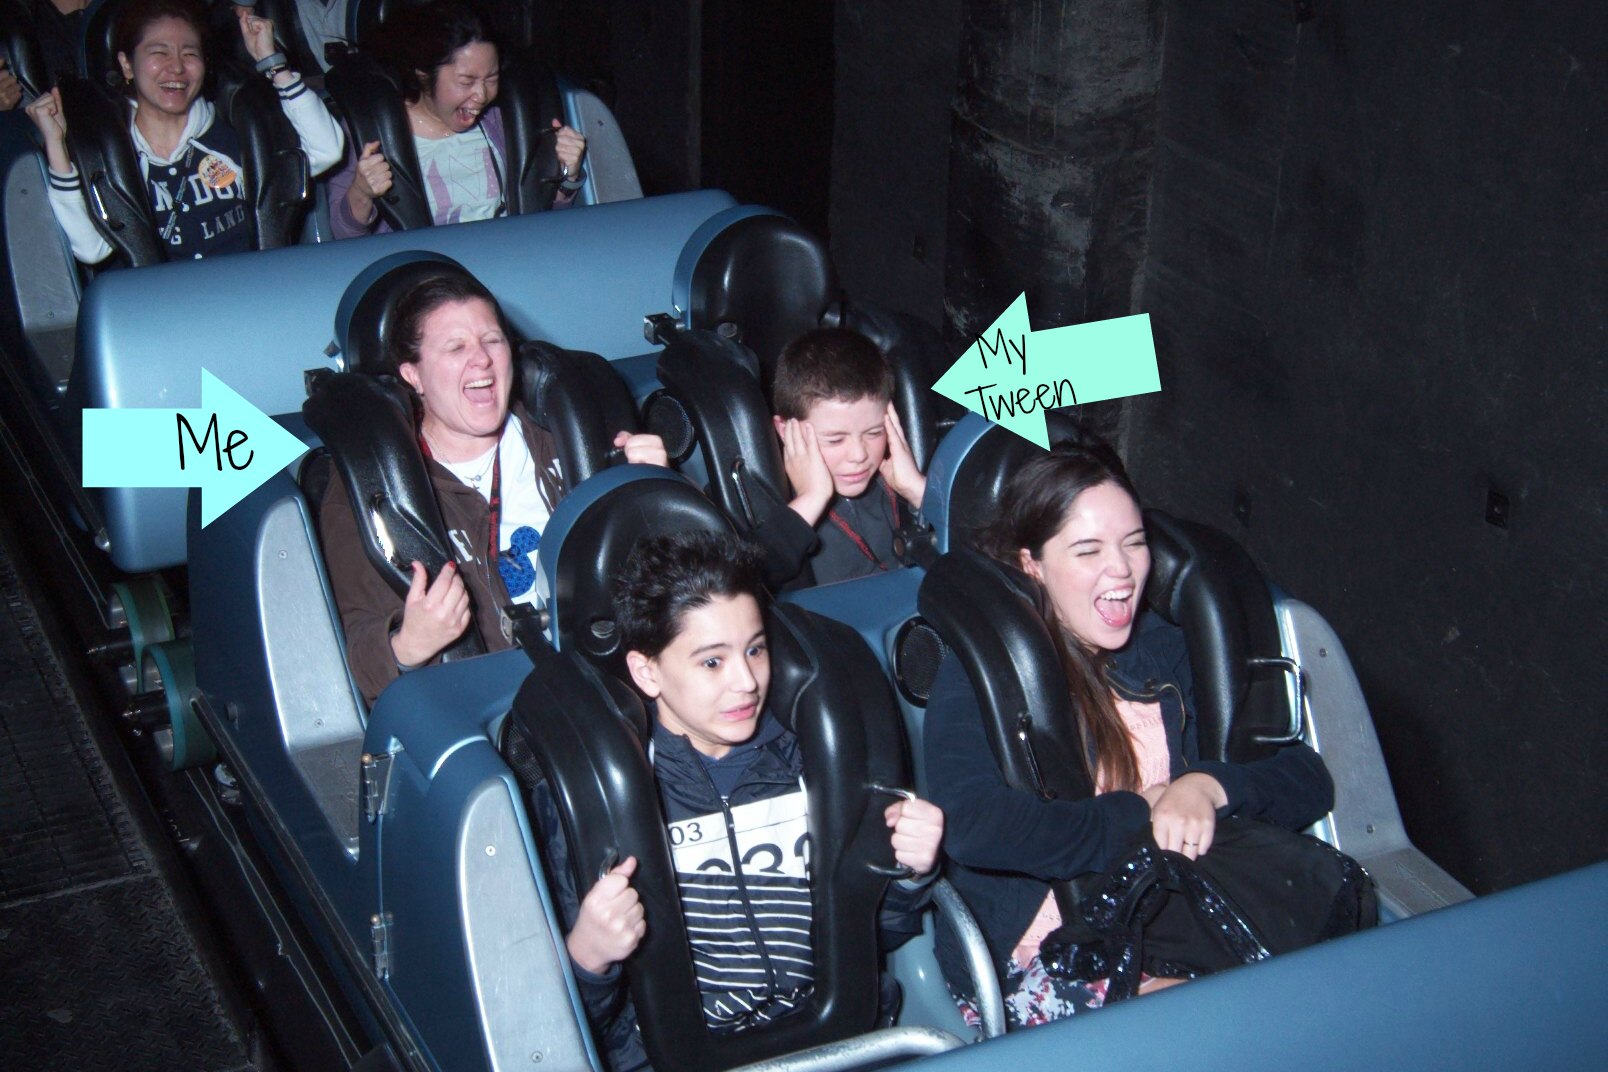 Priceless! Love our expressions on The Rock 'n' Roller Coaster